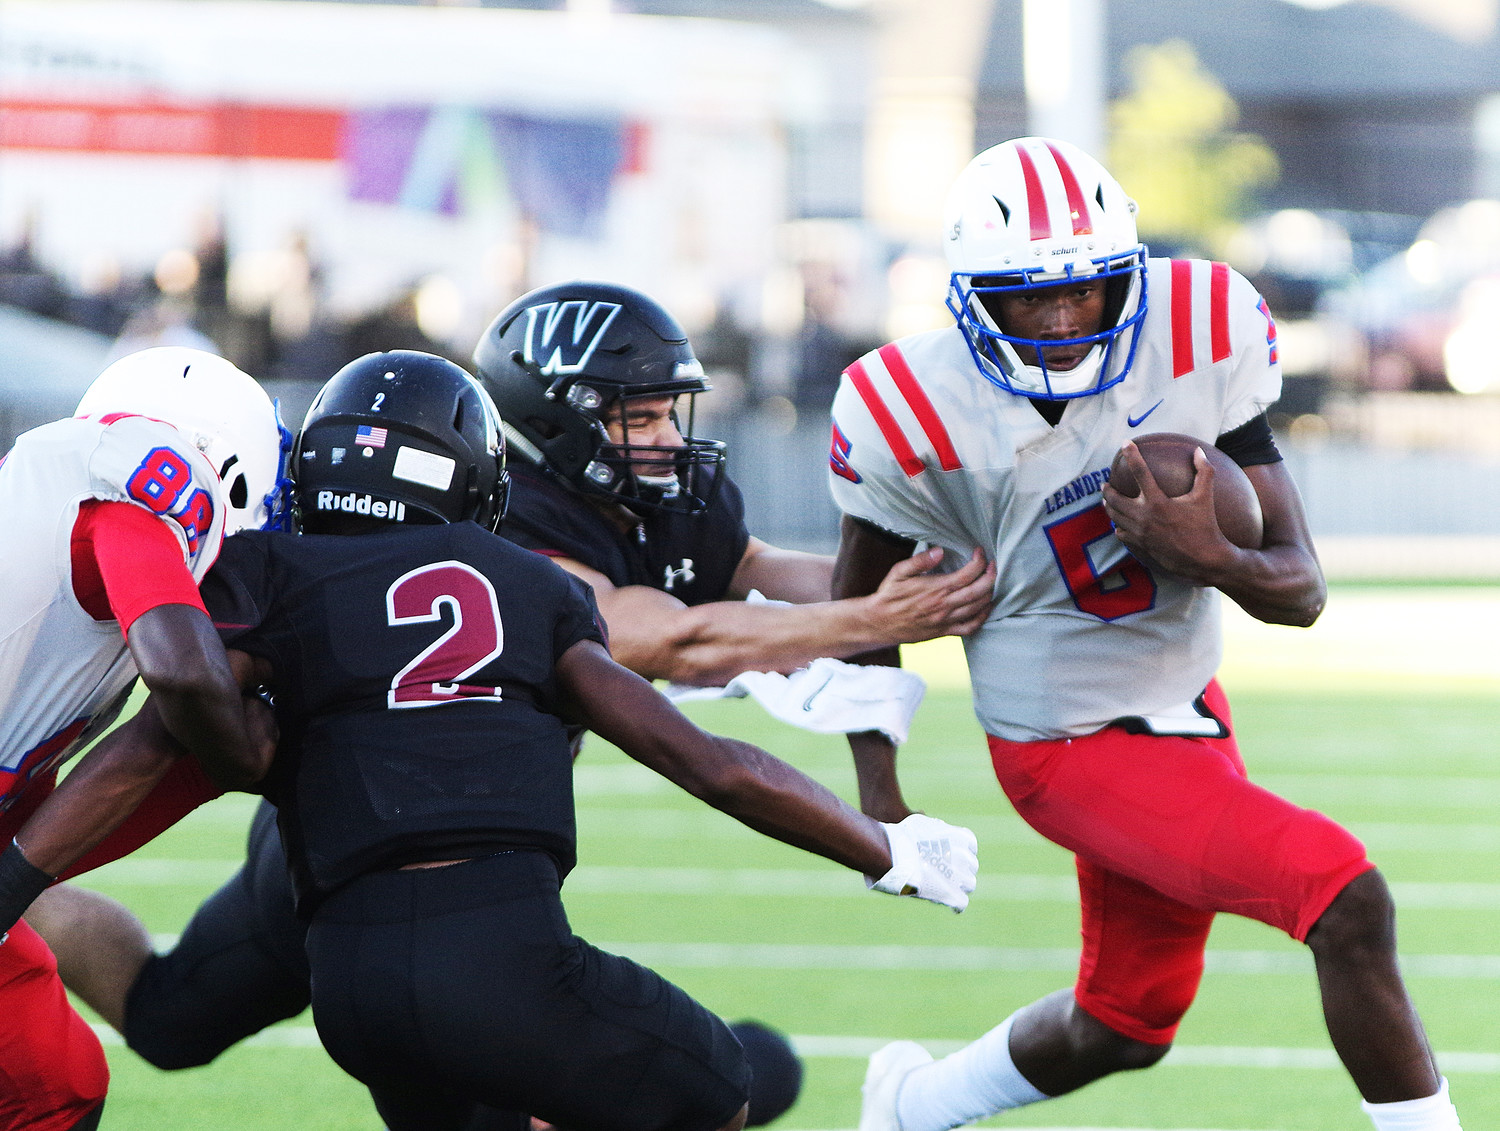 Leander High School Quarterback Rashad Carter (5) avoids a sack as he runs to the outside against Weiss at the Pfield August 30, 2018.